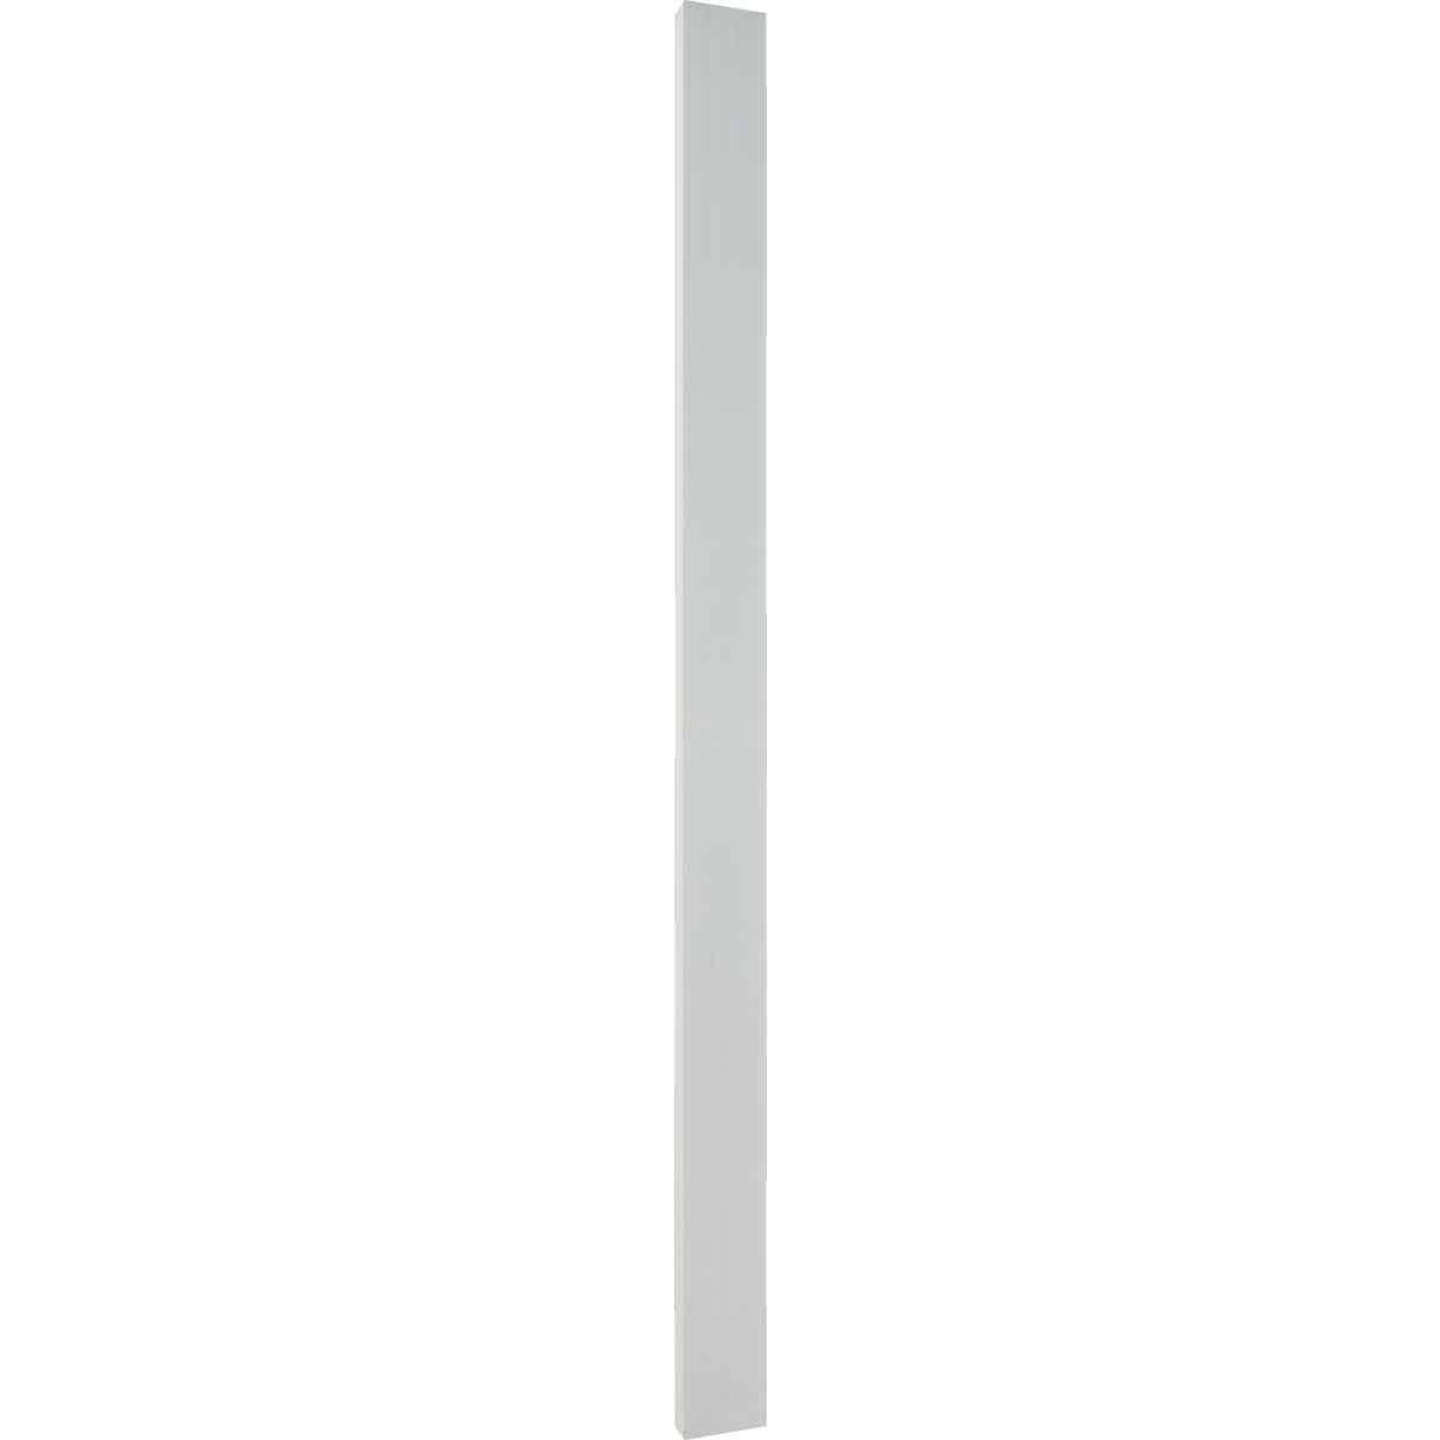 "M-D Ultra White 72"" x 4-1/2"" Sill Nosing Image 2"